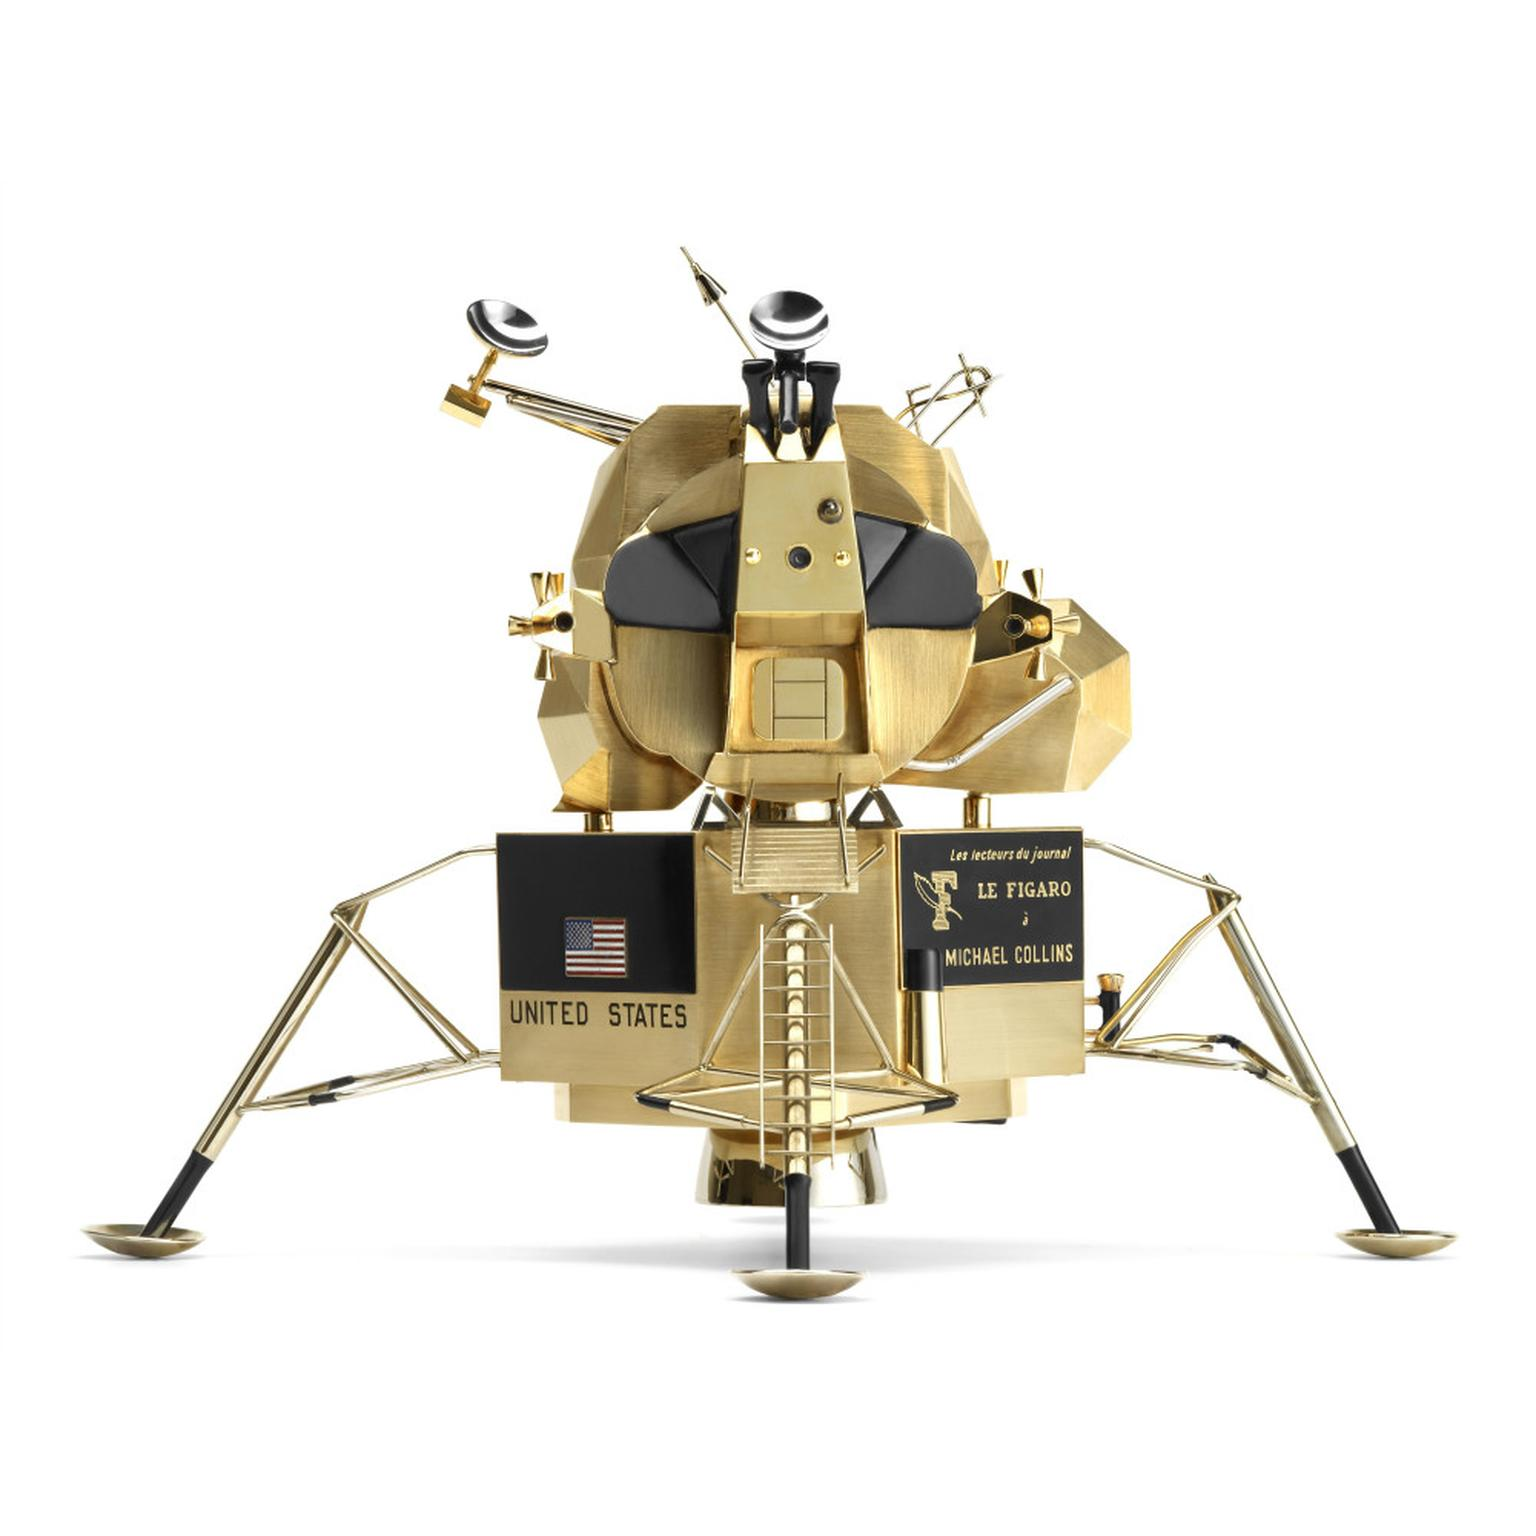 Lunar excursion module by Cartier